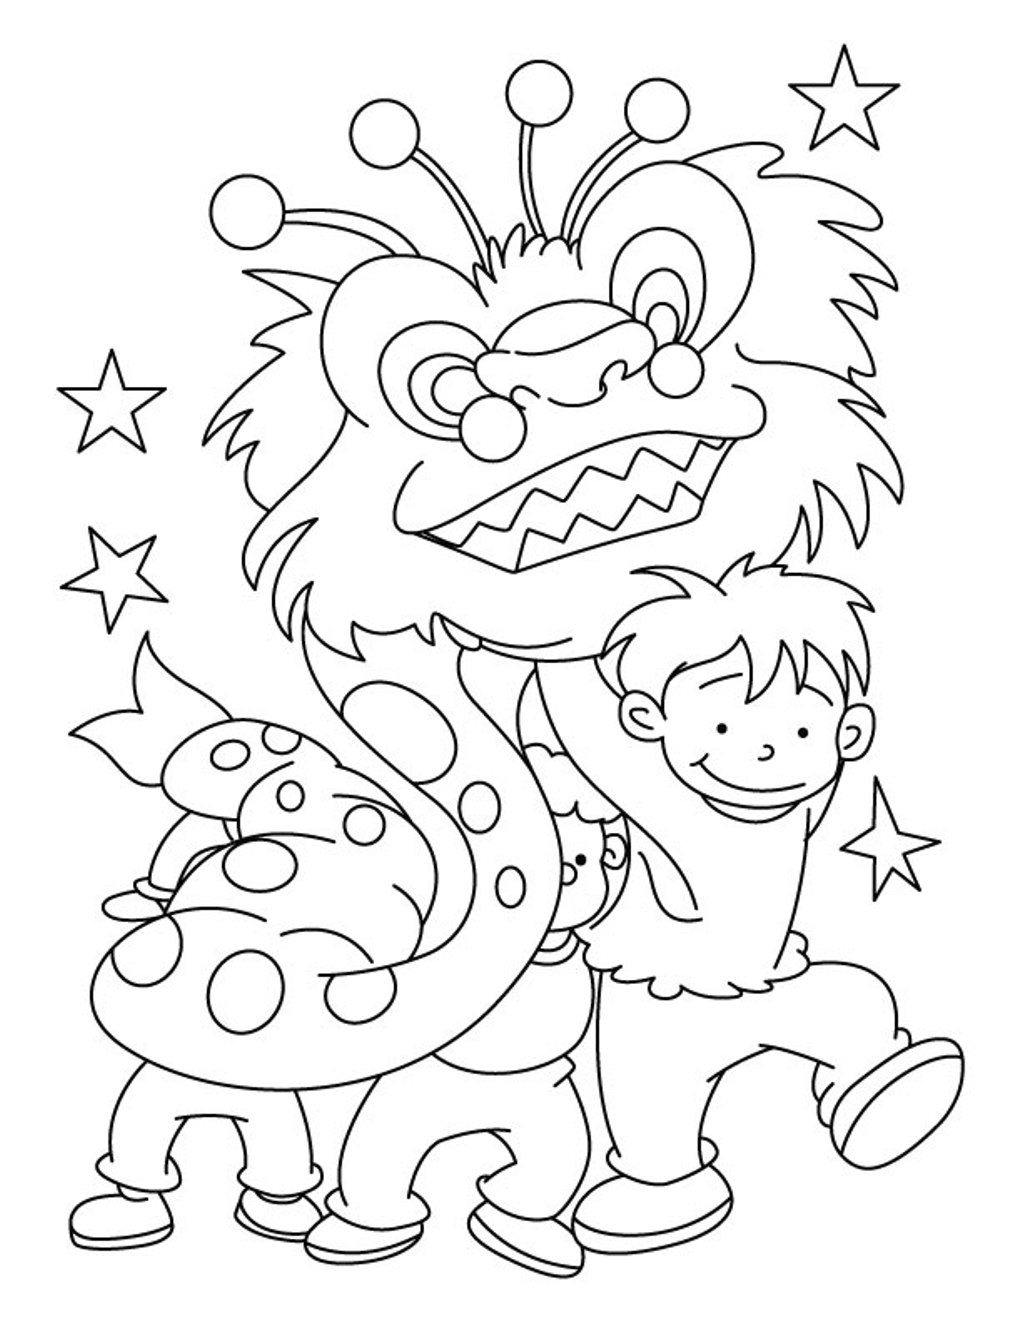 zodiac coloring pages - chinese new year colouring pictures